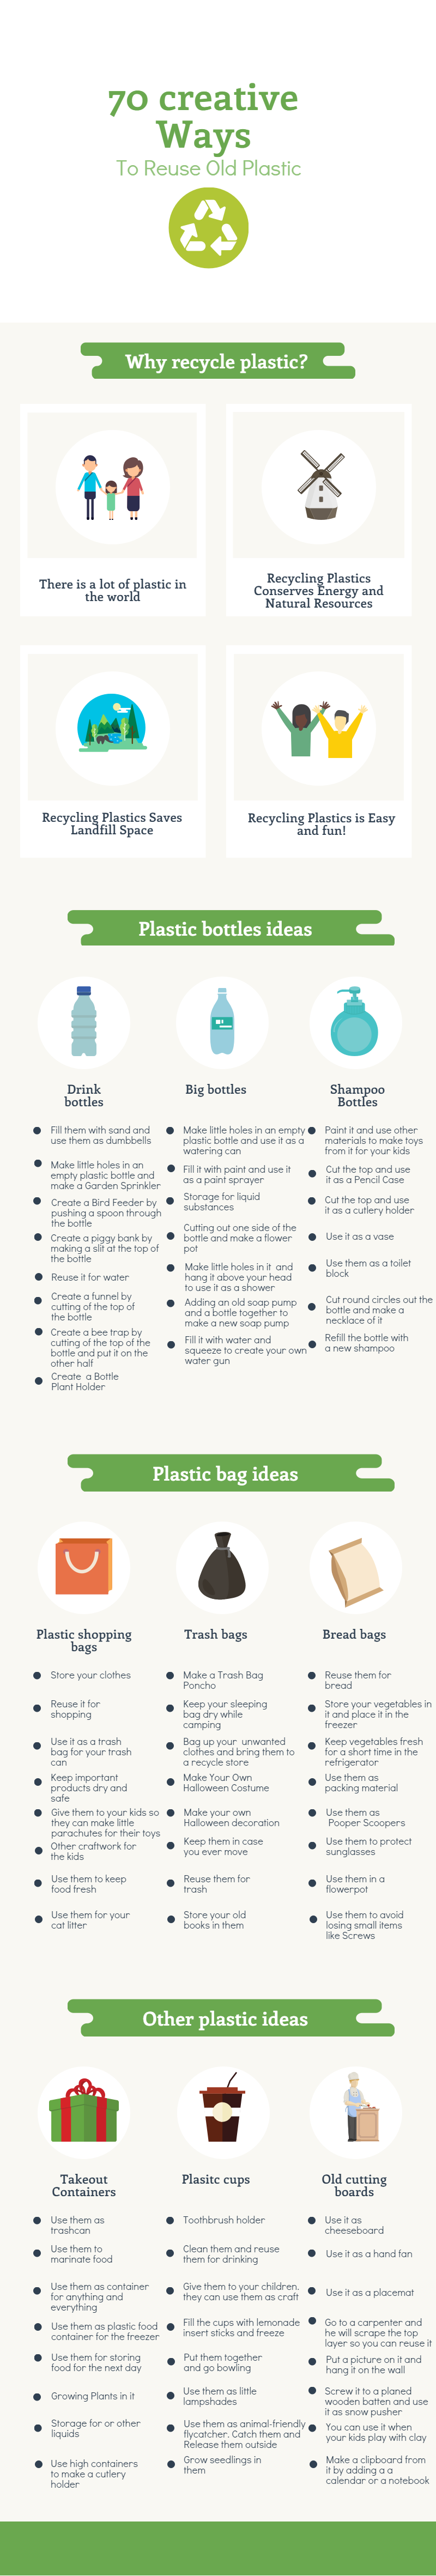 Recycling-Tipps